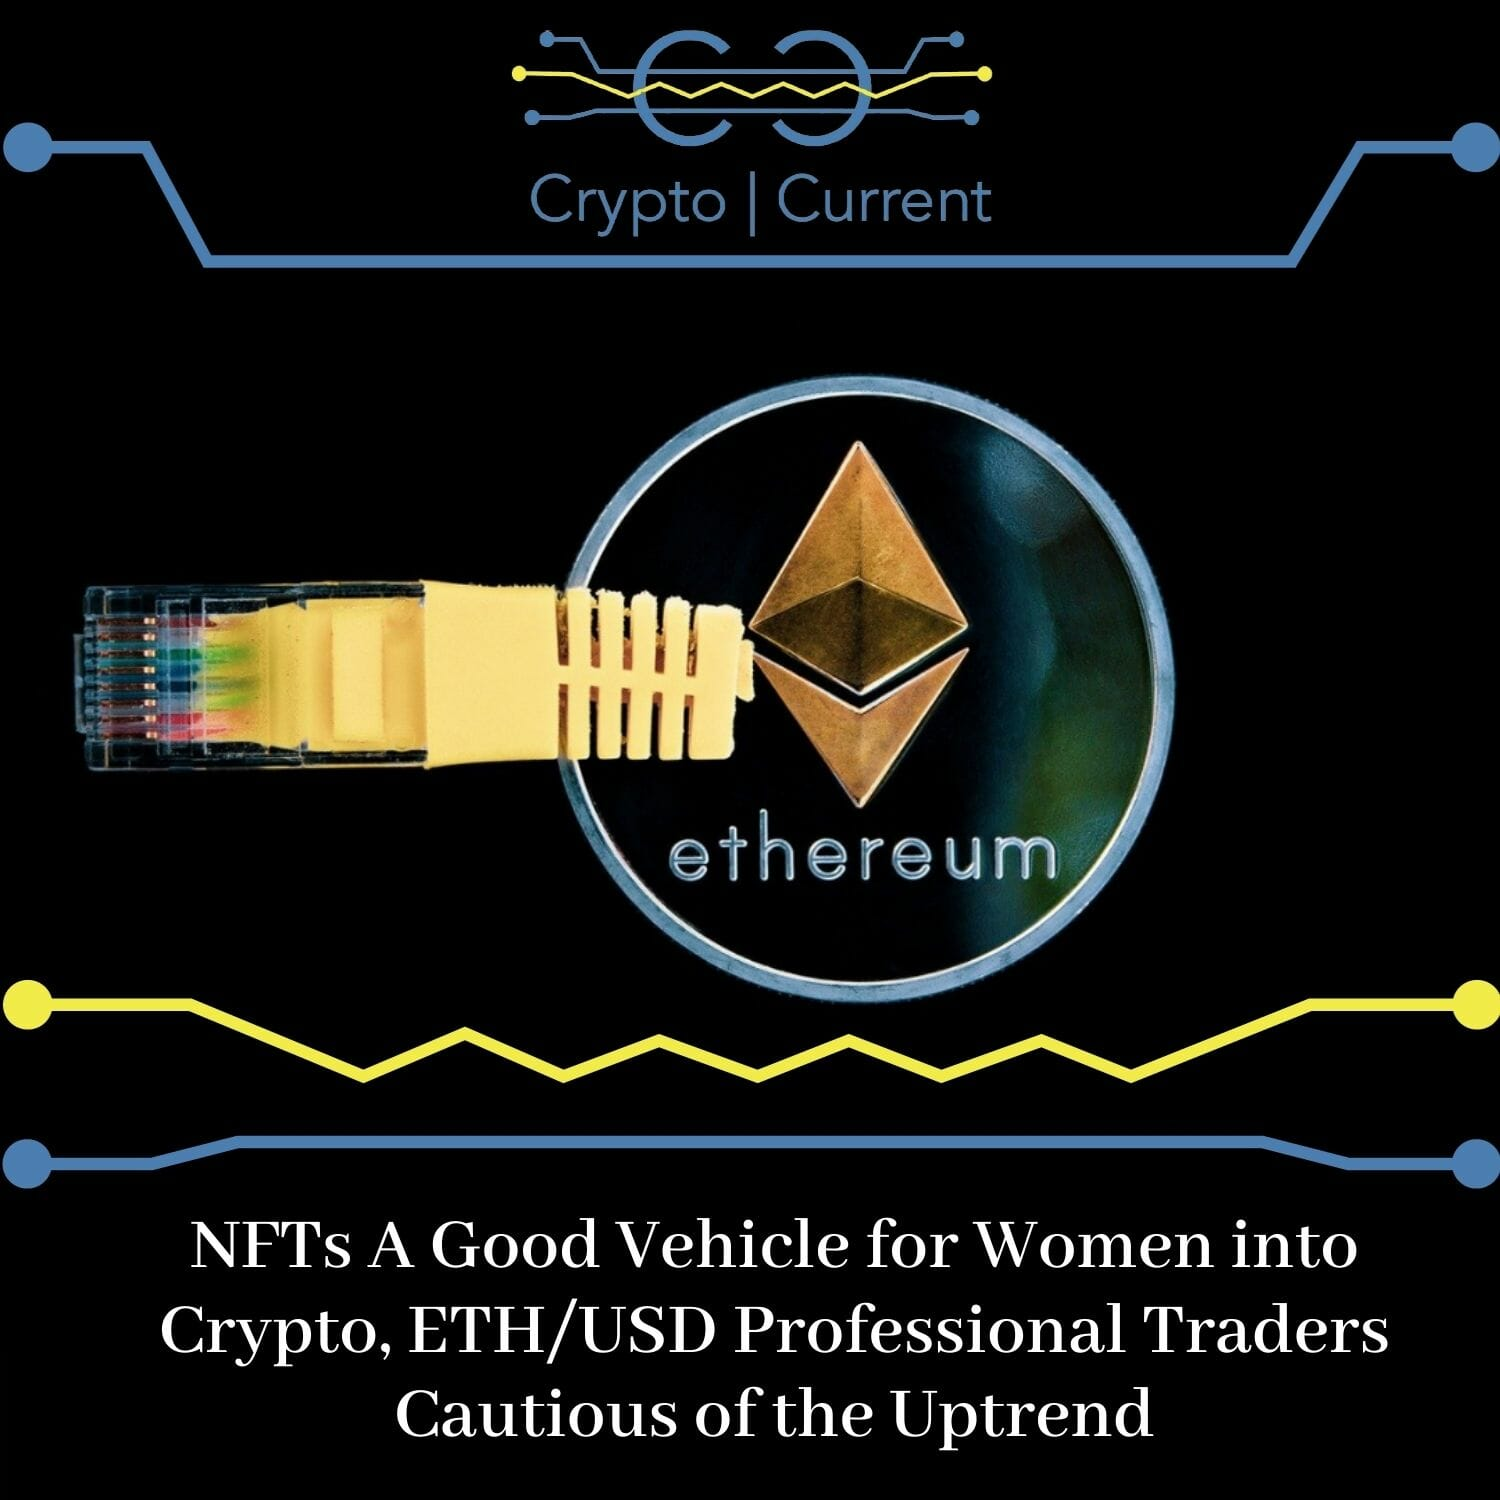 NFTs a conduit for Women to Participate in Crypto Lavinia Osbourne, the founder of Women in Blockchain Talks, thinks NFTs can help them crack into the male-dominated crypto scene. The industry, as per statistics, has few women. This underrepresentation can be solved by promoting NFTs. Unlike fungible tokens, NFTs are usually limited in number. Each piece is differentiated, finding application, especially in art. According to Lavinia, the space can be a relief for many women--some of whom are going through financial distress after losing their jobs. However, dedicated effort to advertise and promote NFTs, a form of crypto, coupled with artists like Beeple making millions from digital art pieces, is paying off. It successfully makes NFTs more relatable, more so to people in the art and creative industry. ETH/USD Derivatives Traders are Cautious despite Impressive Gains There is a contago between Ethereum spot and derivatives market, reading from premium rates. While ETH bulls expect prices to inch higher, perhaps explode above $3k in the coming week due to EIP-1559 activation, making ETH coins deflationary, ETH/USD annualized premium rates underwhelming. Usually, in a palpable bull market, ETH/USD premium would be above 12 percent as buyers flow in and sellers avoid liquidating. ETH/USD premium in the derivatives market is now at around eight percent or a premium of about 1.3 percent—in the positive—as per ETH three month futures. As a result, the only interpretation drawn from this is: Professional traders are cautious.